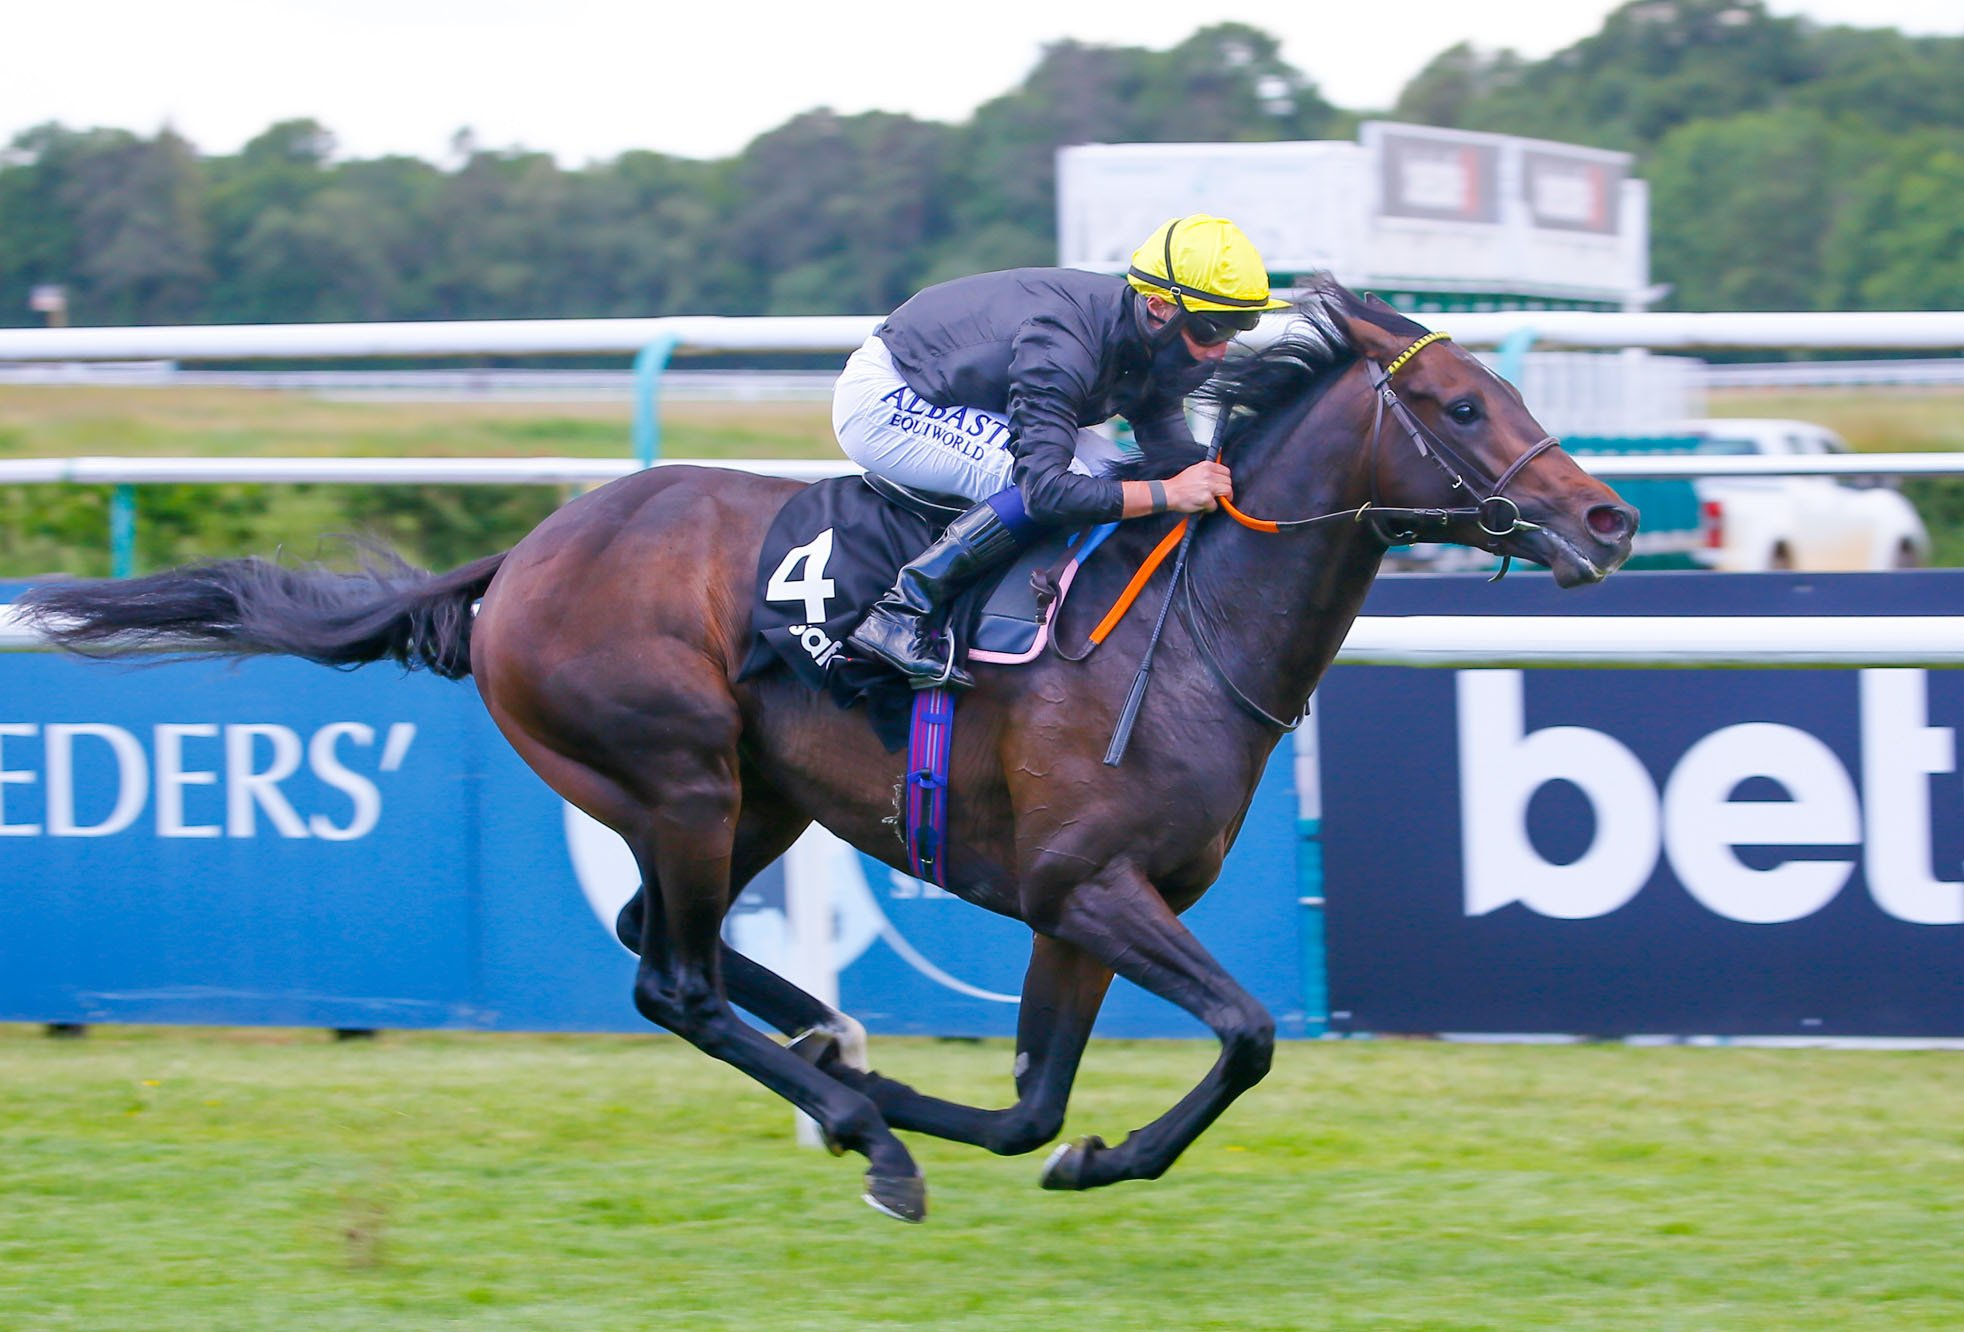 English King bound for Australia after record-breaking sale